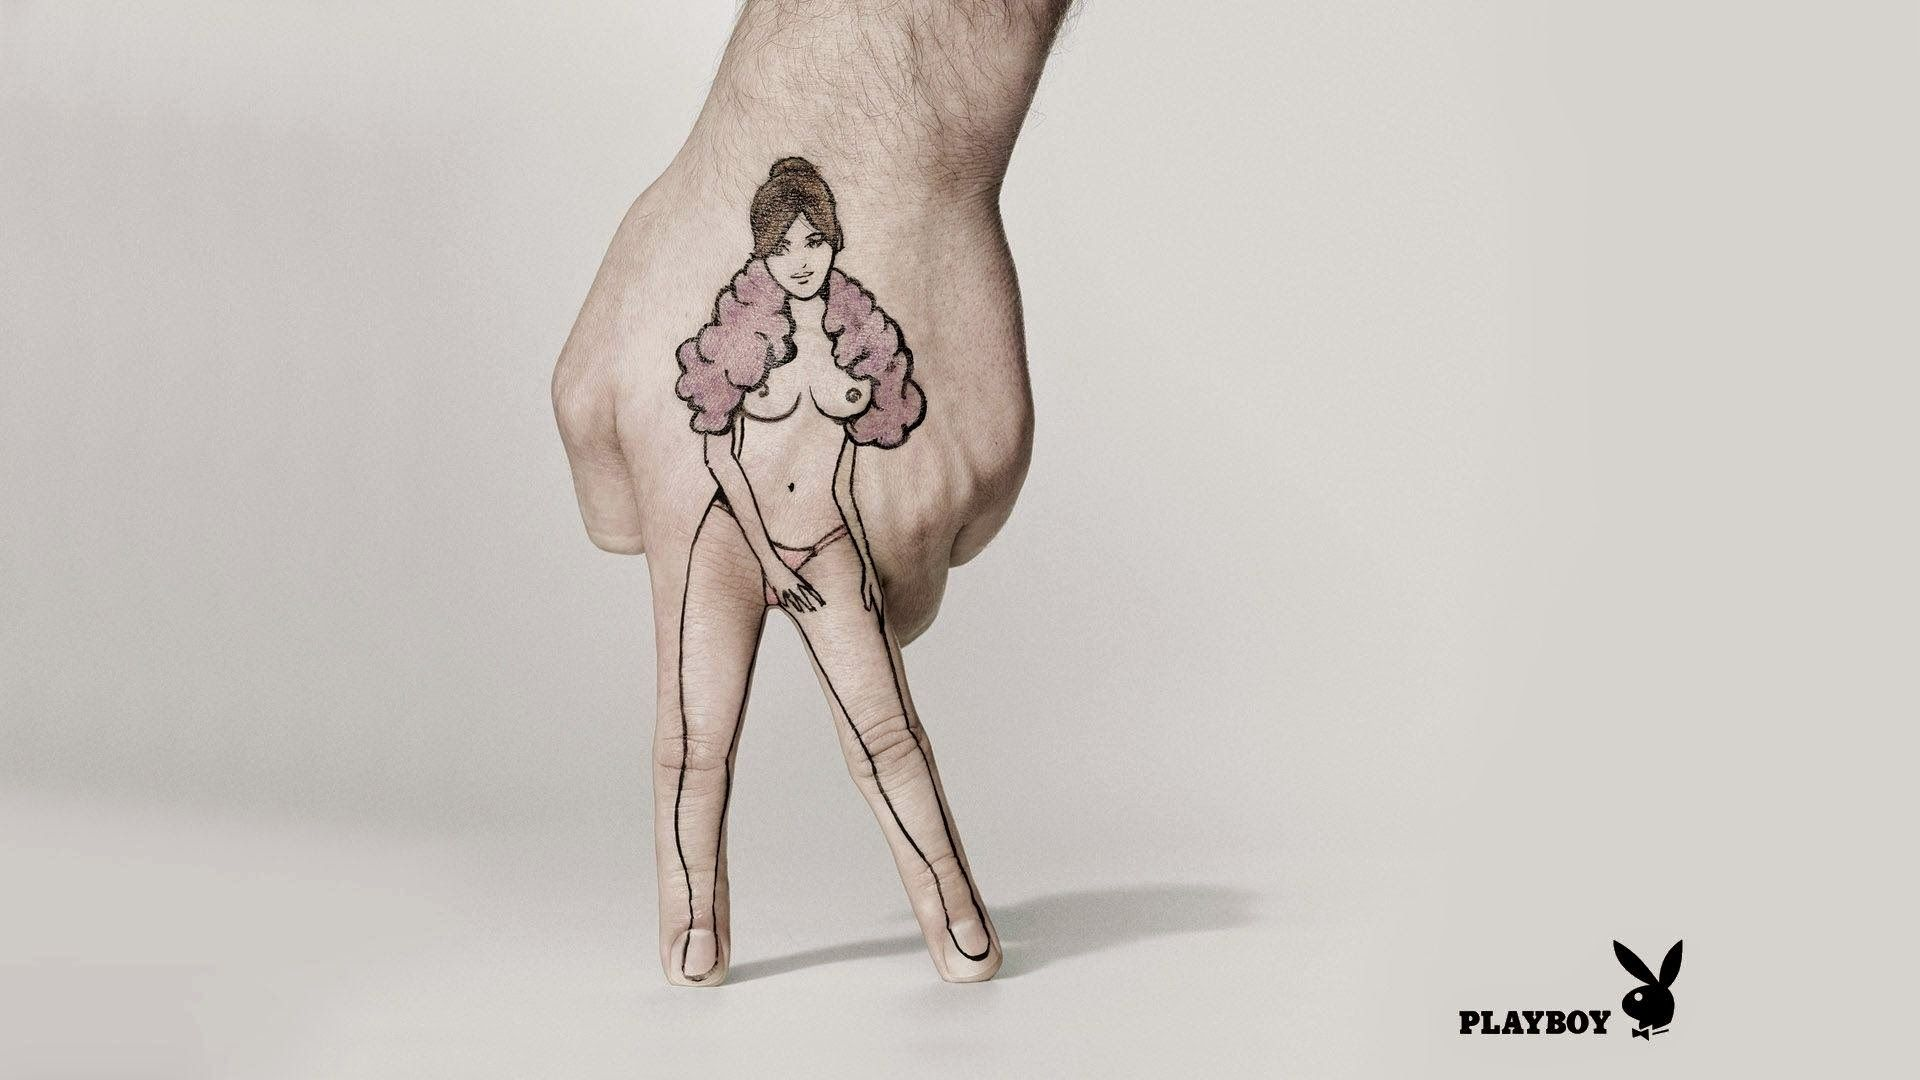 hand girl advertising Creative style playboy logo 1080x1920